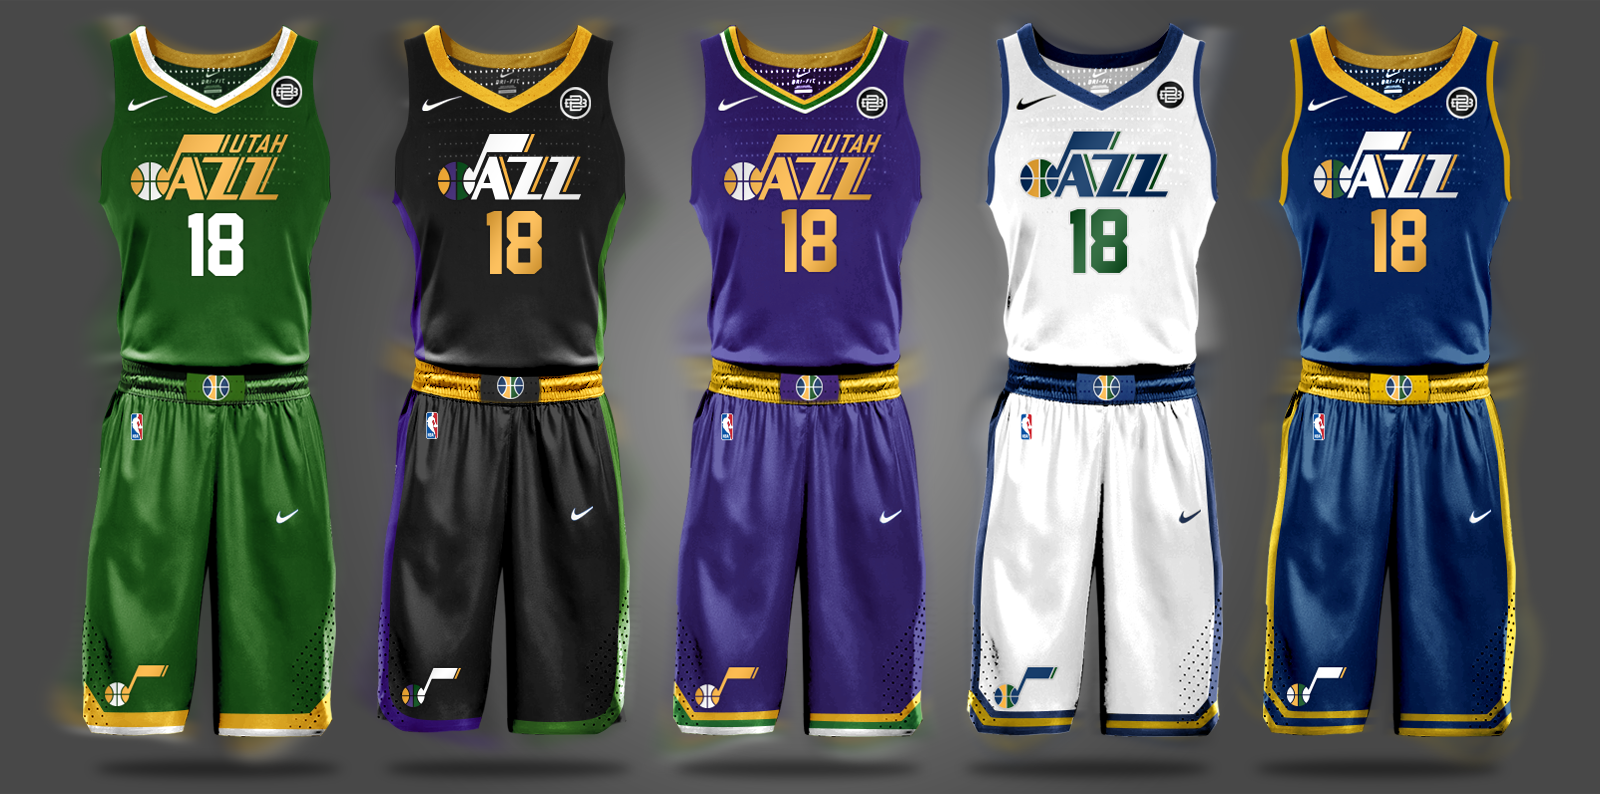 9ad595f7458 New Nike Uniforms  How Bad Are They Going To Look